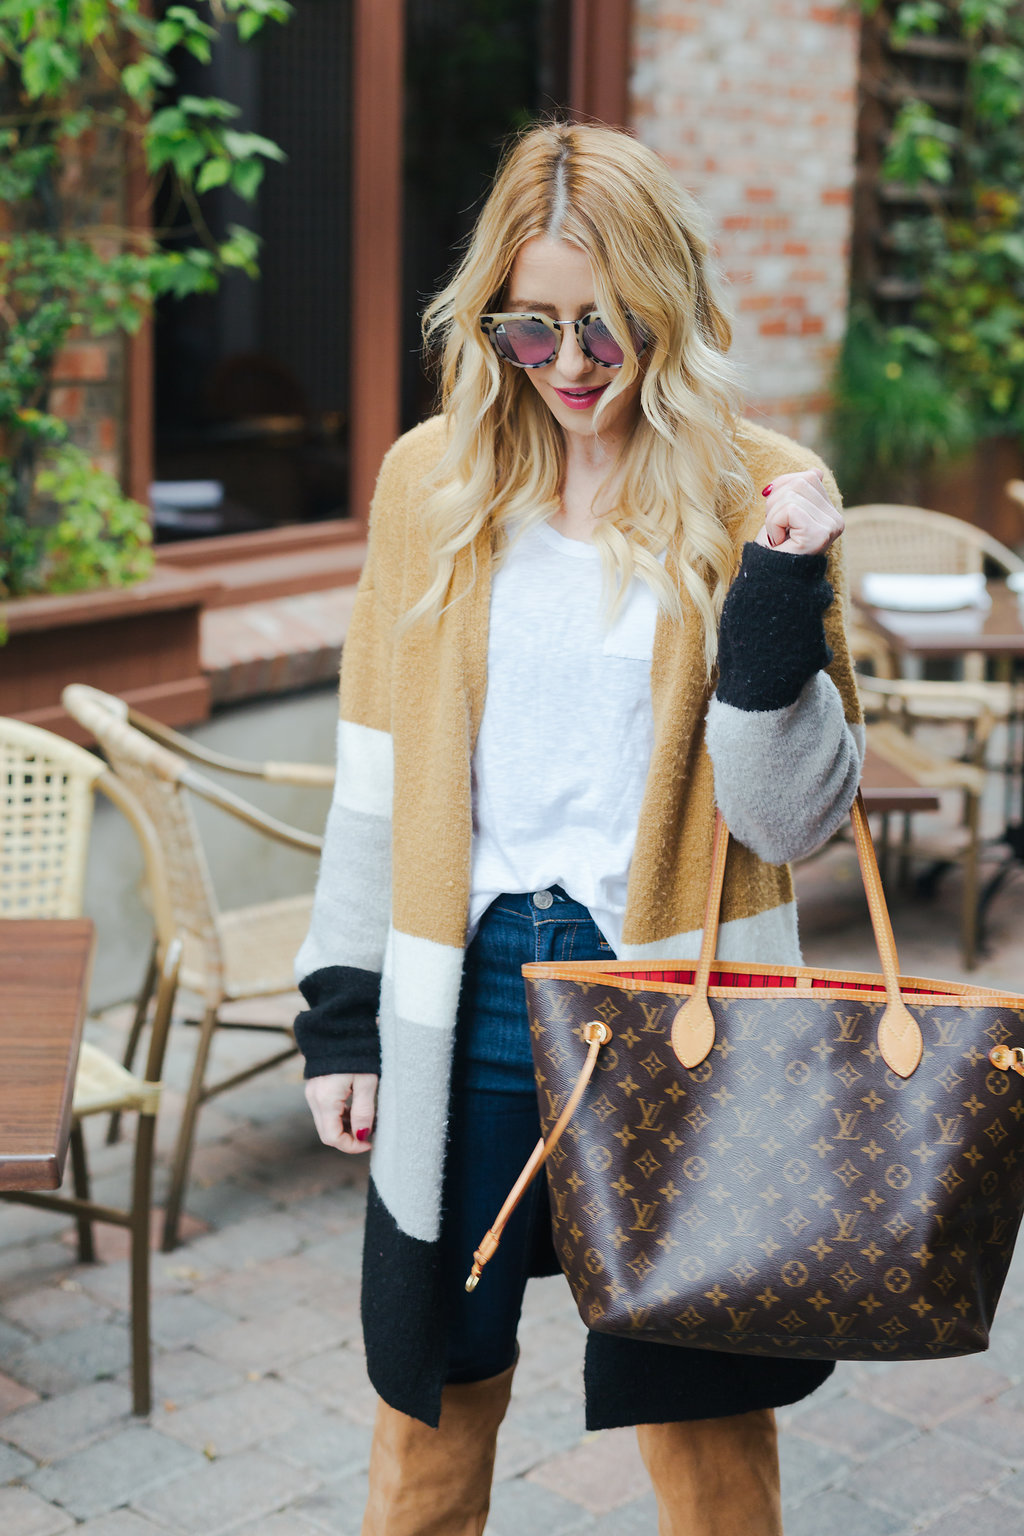 Louis Vuitton Neverfull at a Discount | Fashion | For the Love